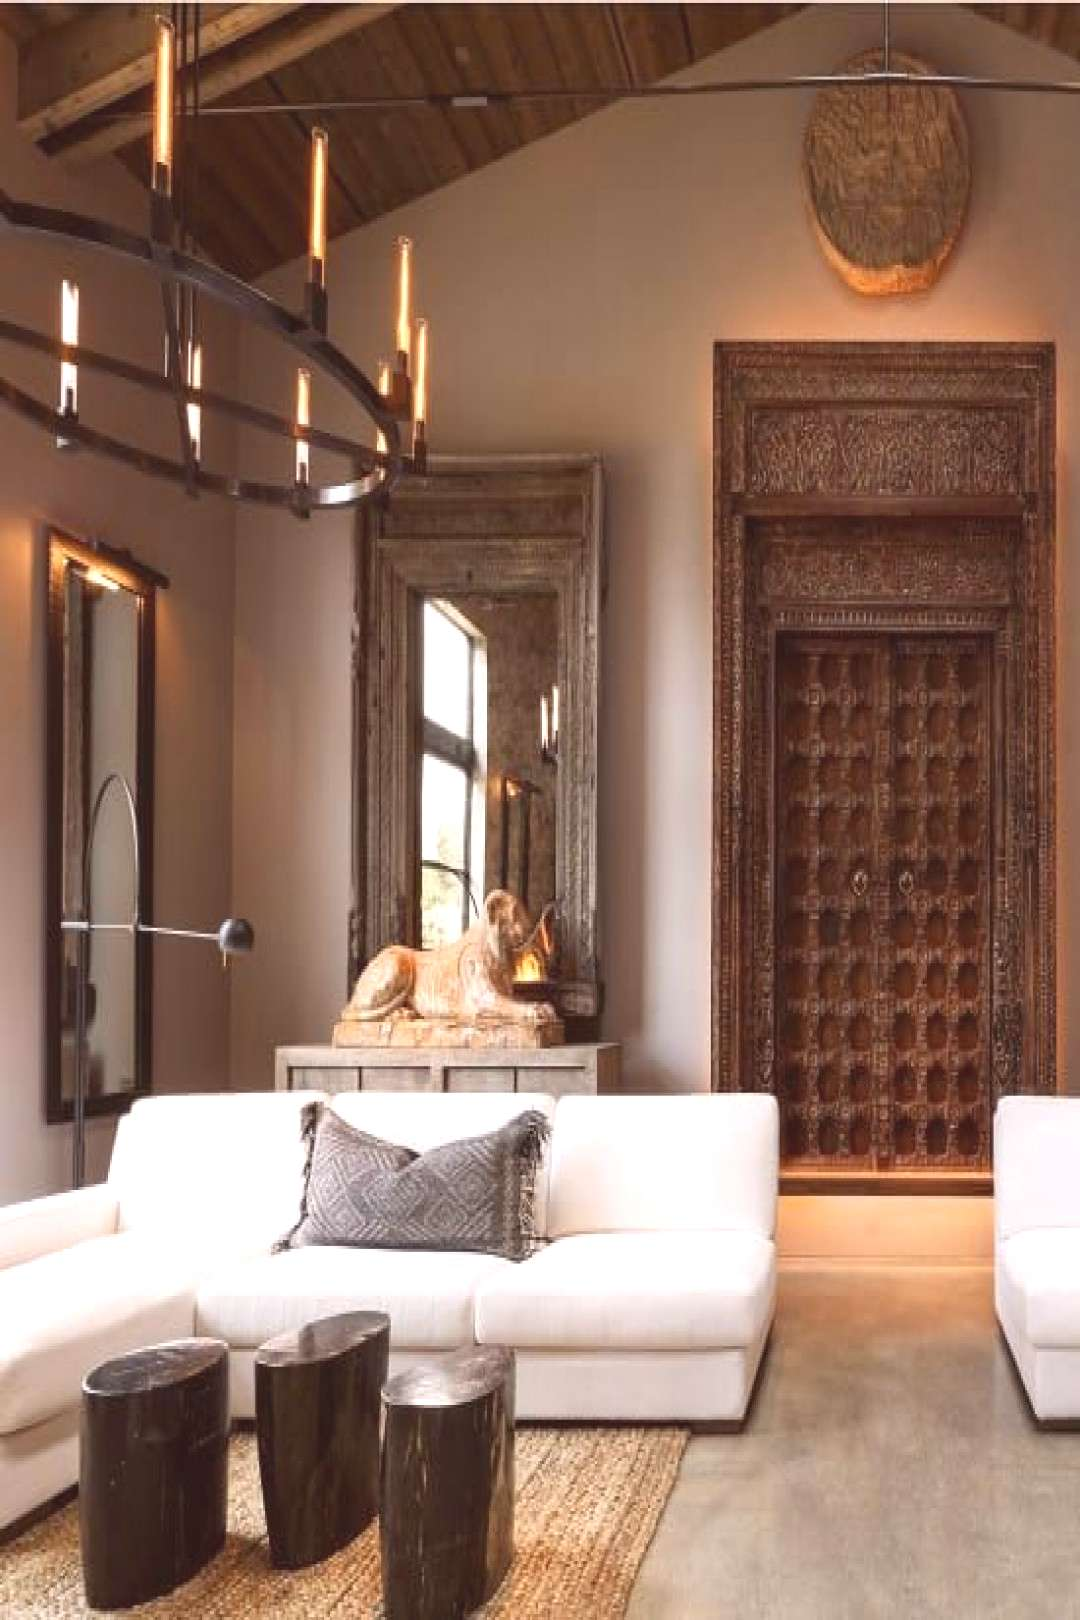 Restoration Hardware's Napa Valley Compound Is an Ultra-Luxe Atelier